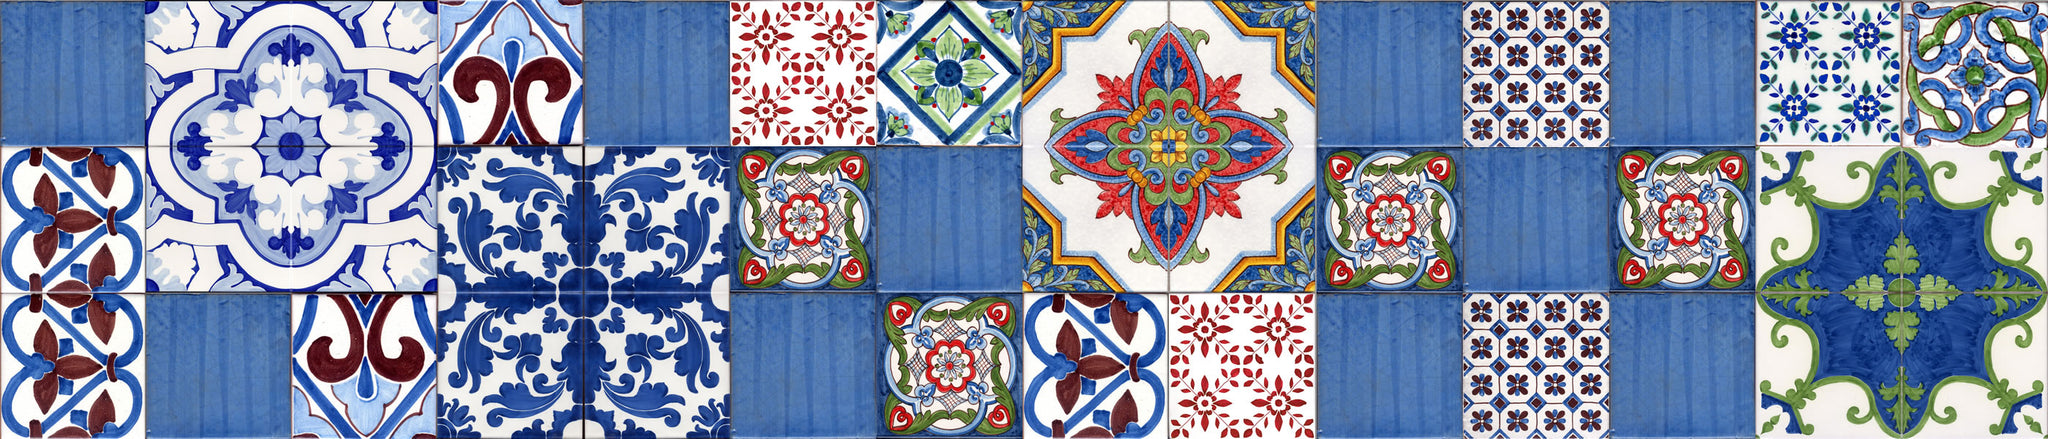 Patchwork piastrelle stile Eoliano decorate a mano Caltagirone